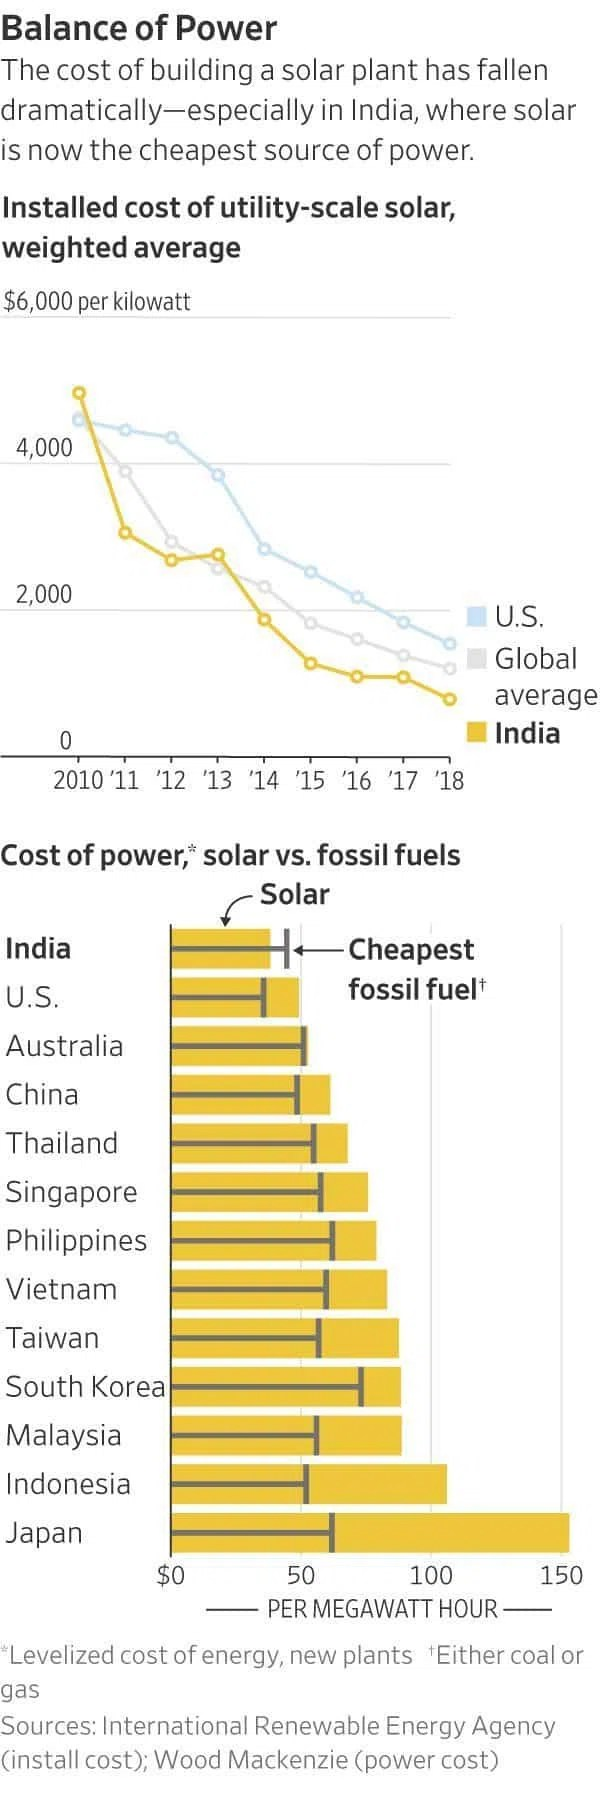 Installed cost of utility-scale solar, weighted average.